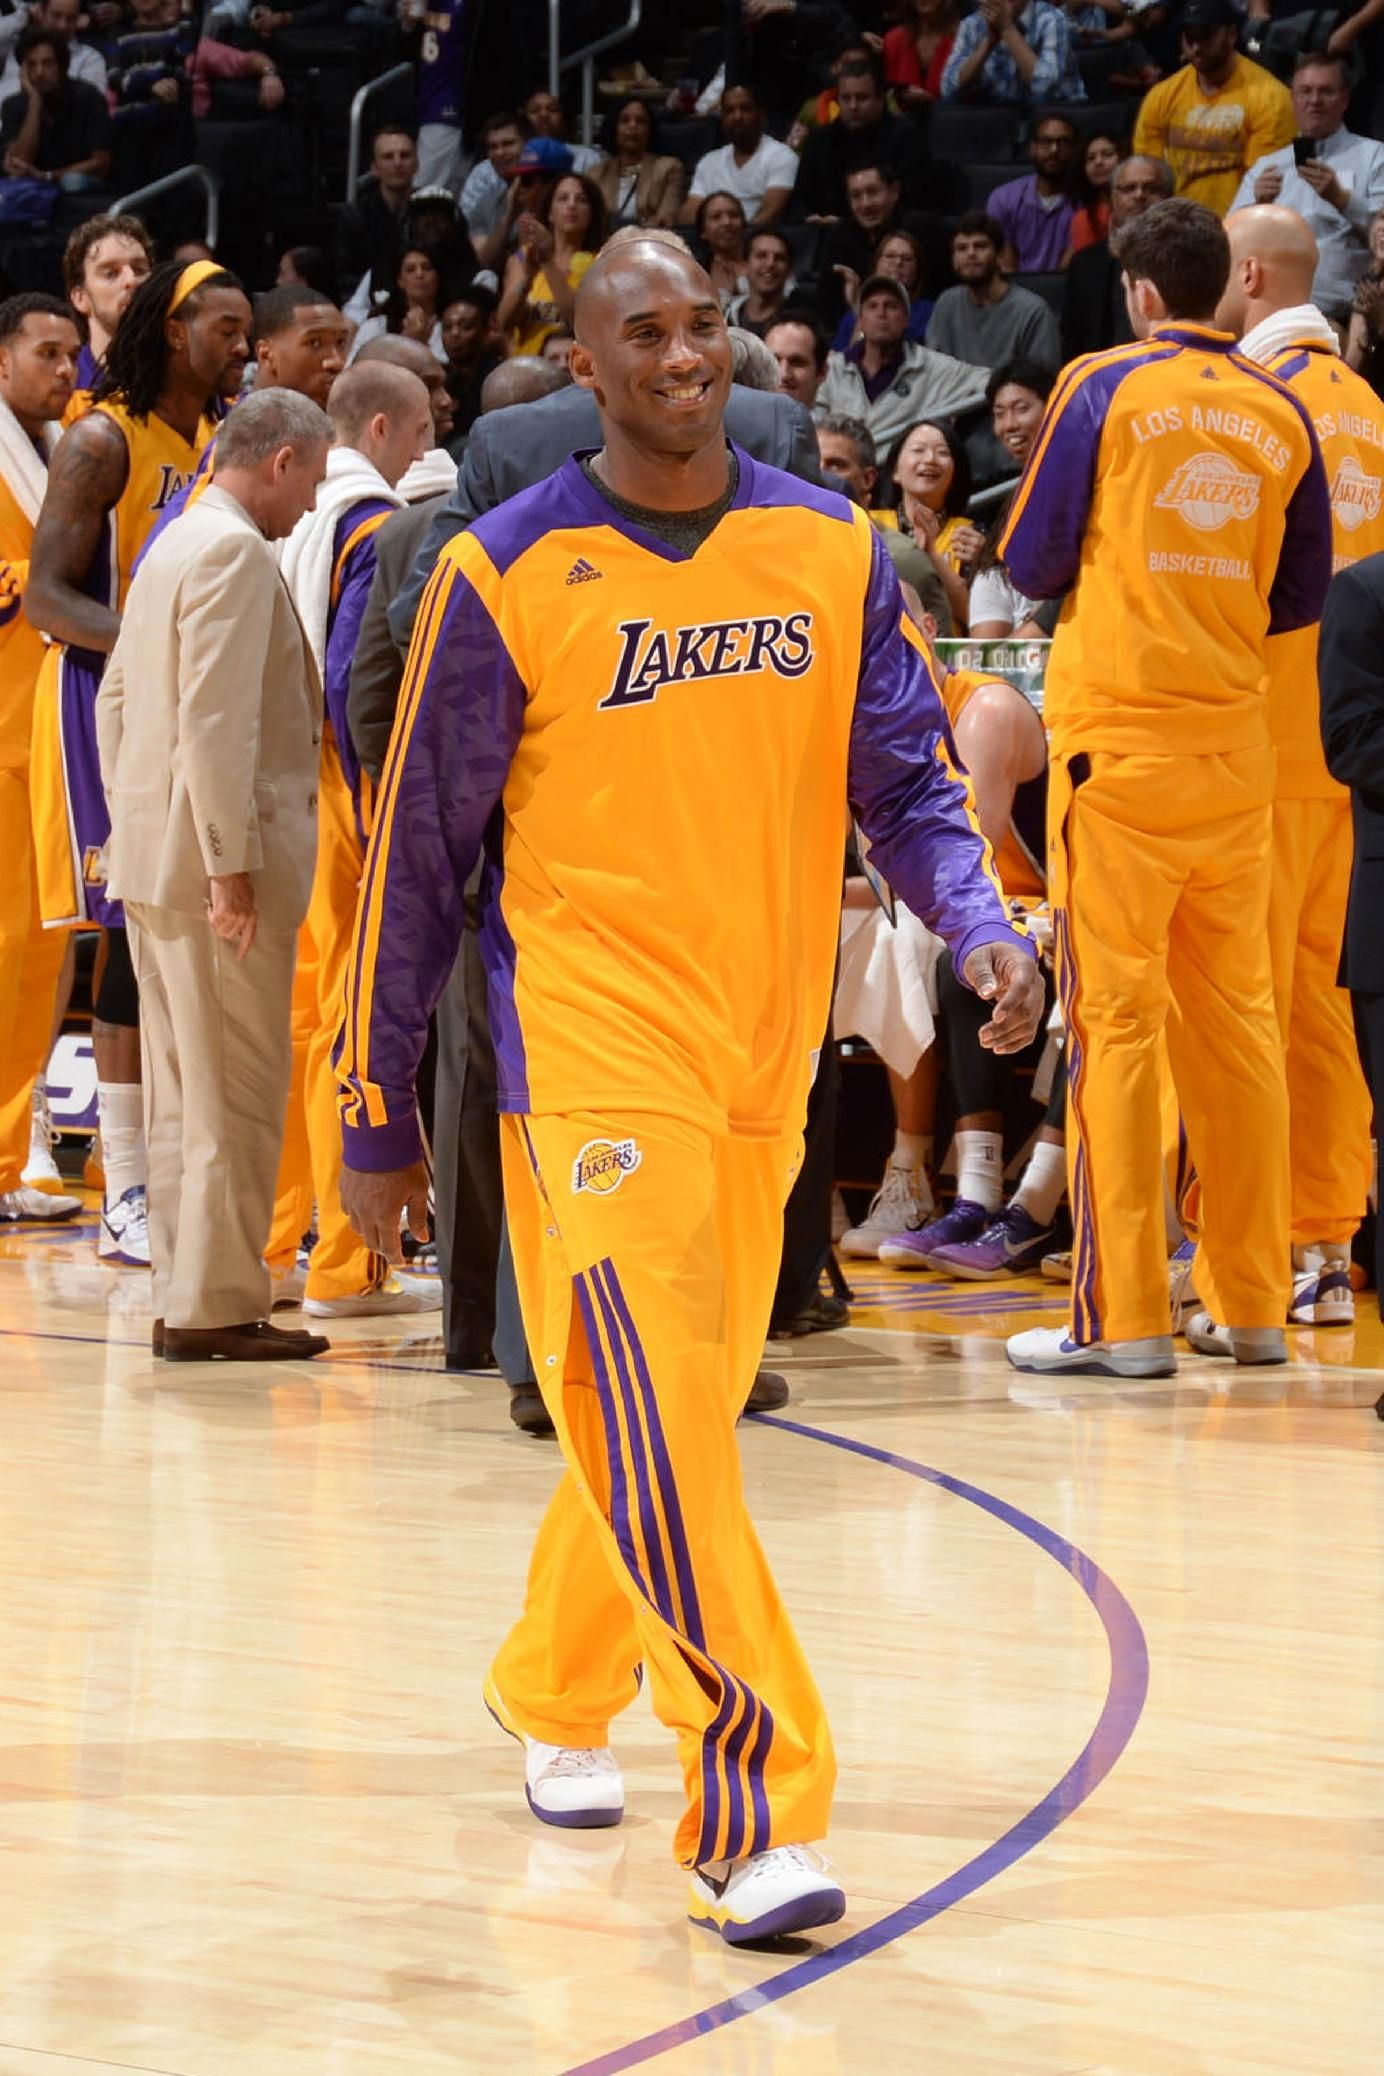 Los Angeles Ca November 15 Kobe Bryant 24 Of The Los Angeles Lakers Makes His Way To Midcourt To Help Present A Kobe Bryant Kobe Bryant 24 Kobe